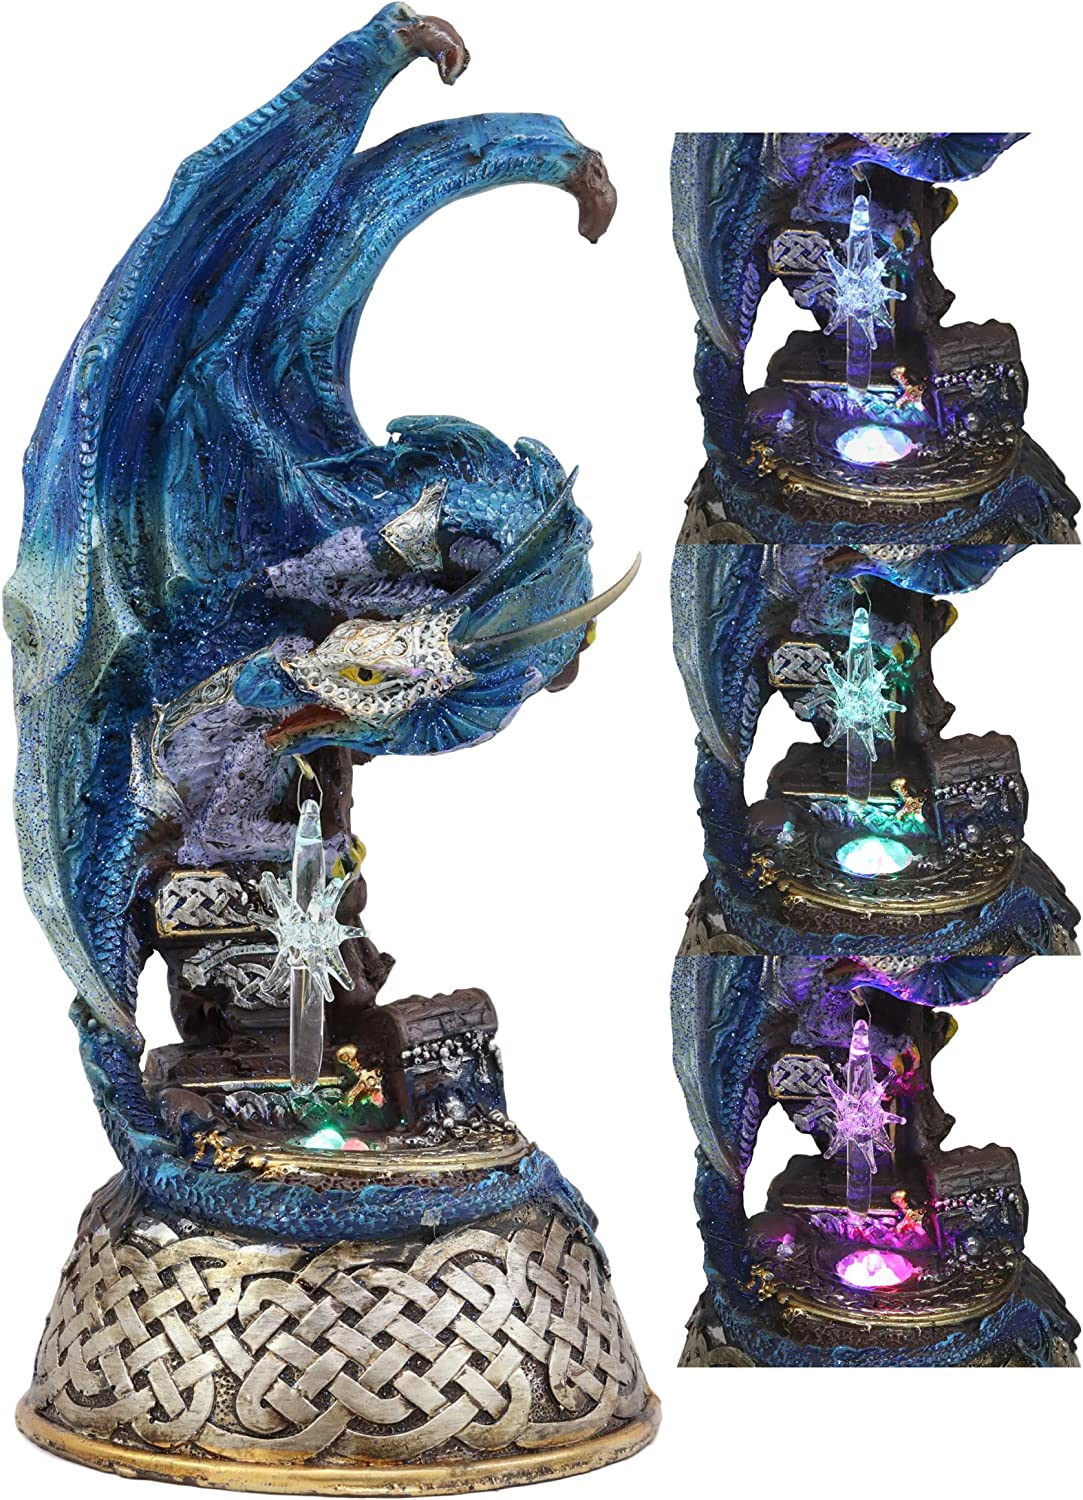 Amazon Com Ebros Medieval Fantasy Midnight Summer Dream Armored Blue Ice Dragon On Celtic Knotwork Pedestal Statue With Color Changing Led Crystal Night Light For Home Decor Dungeons And Dragons Gothic Theme Home